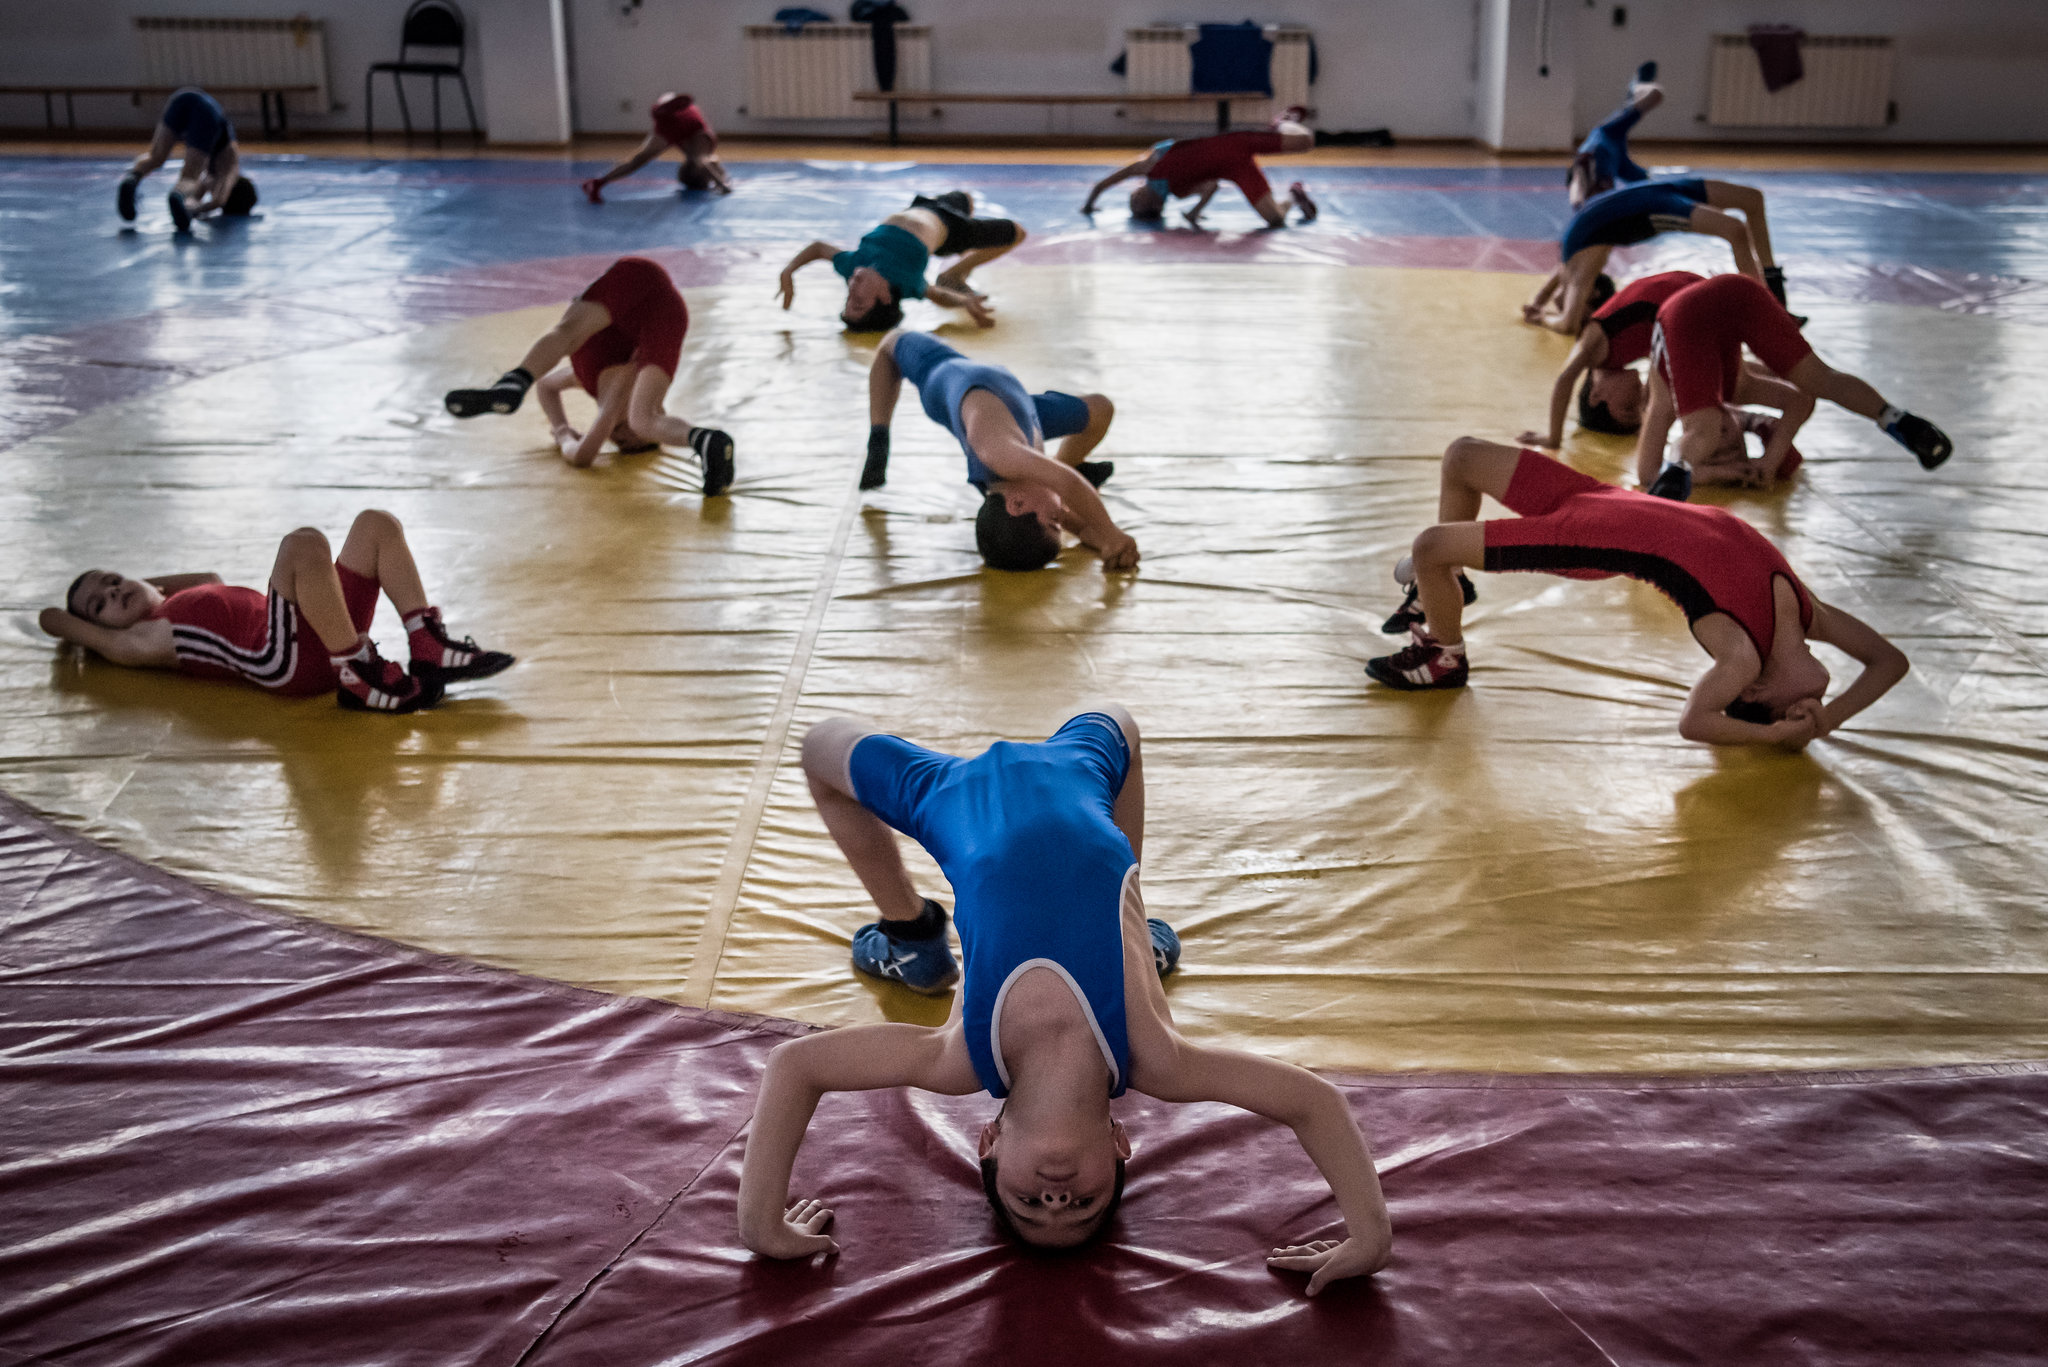 A Wrestling Culture That Helps Keep Boys Away From